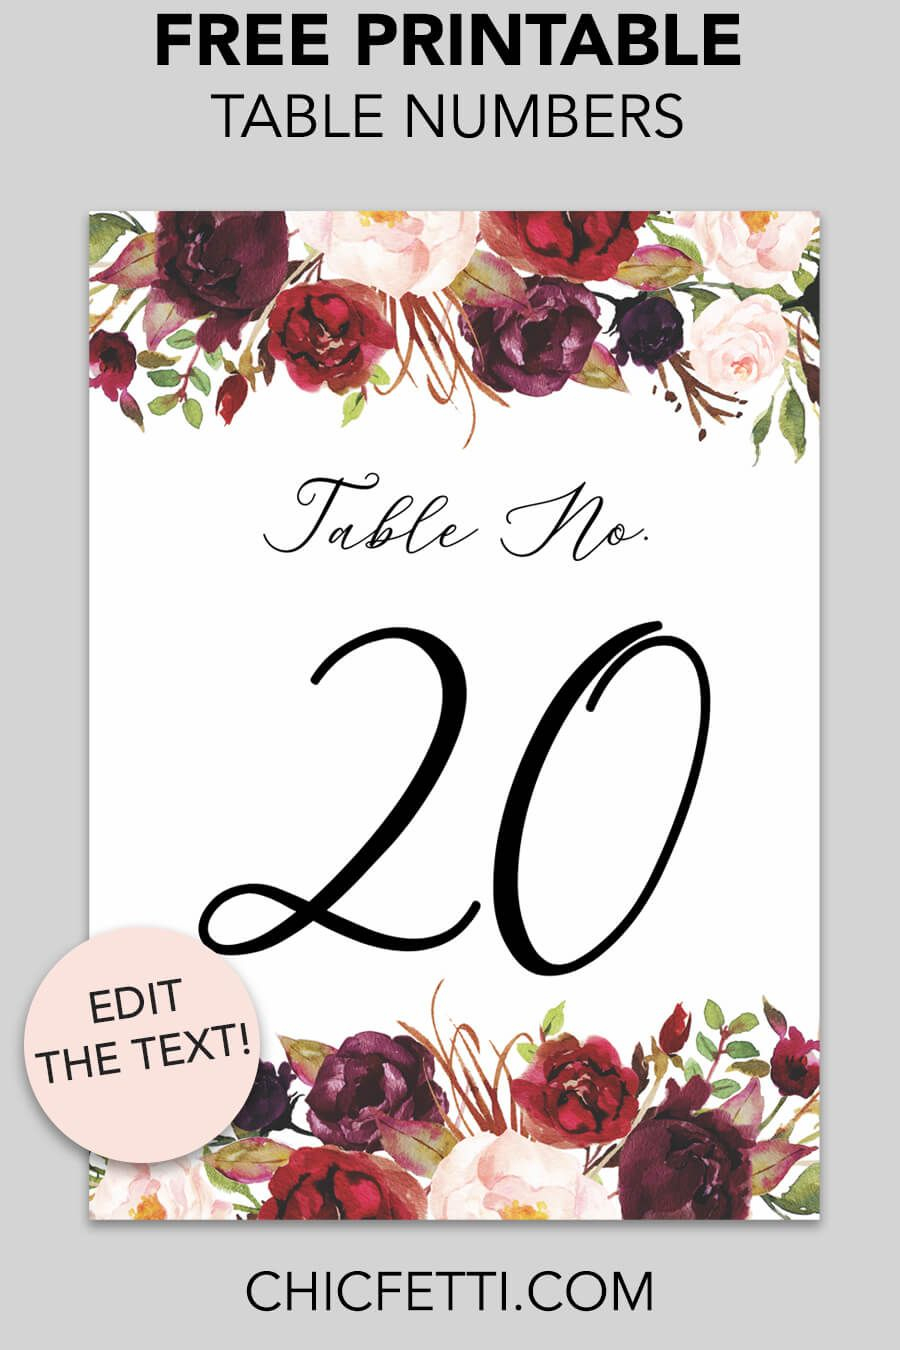 Free Printable Table Numbers - Download And Print These Free Printab - Free Printable Table Numbers